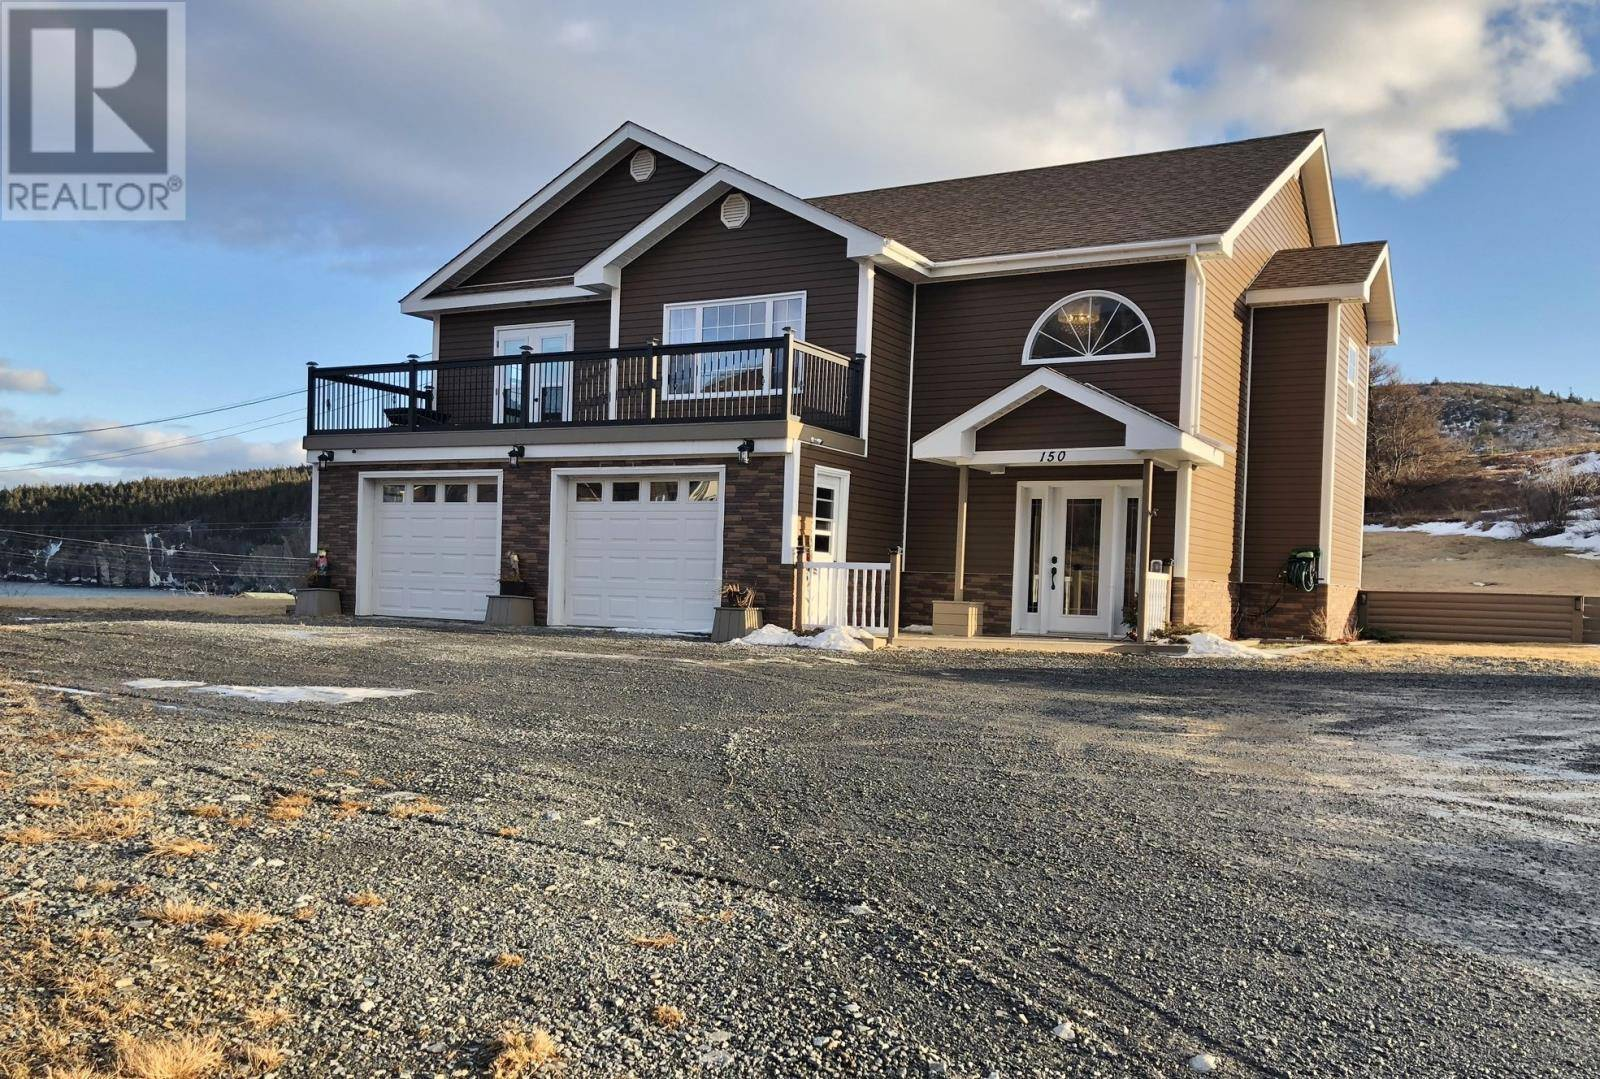 House for sale at 150 Main St East Salmon Cove Newfoundland - MLS: 1209353